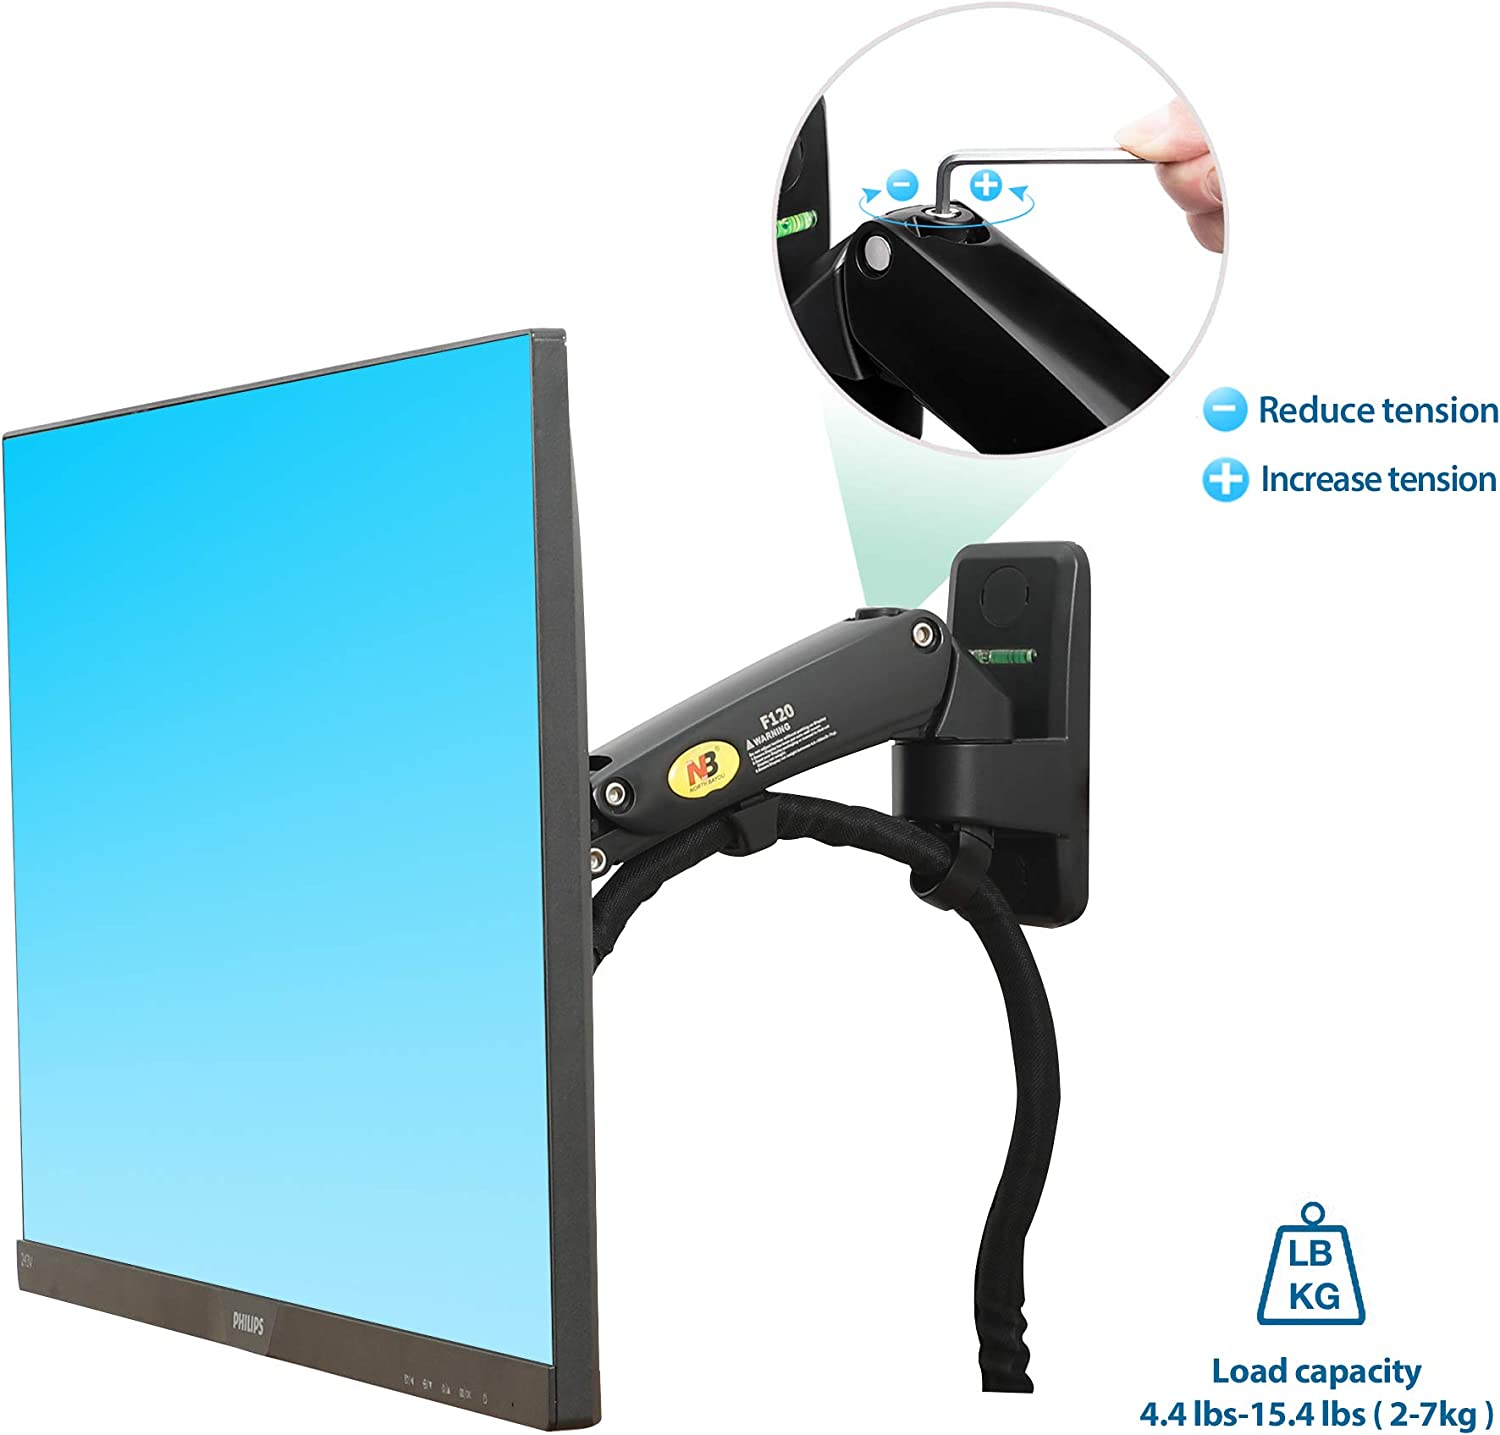 NB North Bayou TV Monitor Wall Mount Bracket Full Motion Articulating Swivel for 17-27 Inch Monitors with Gas Spring (Black Single Extension) F120-B